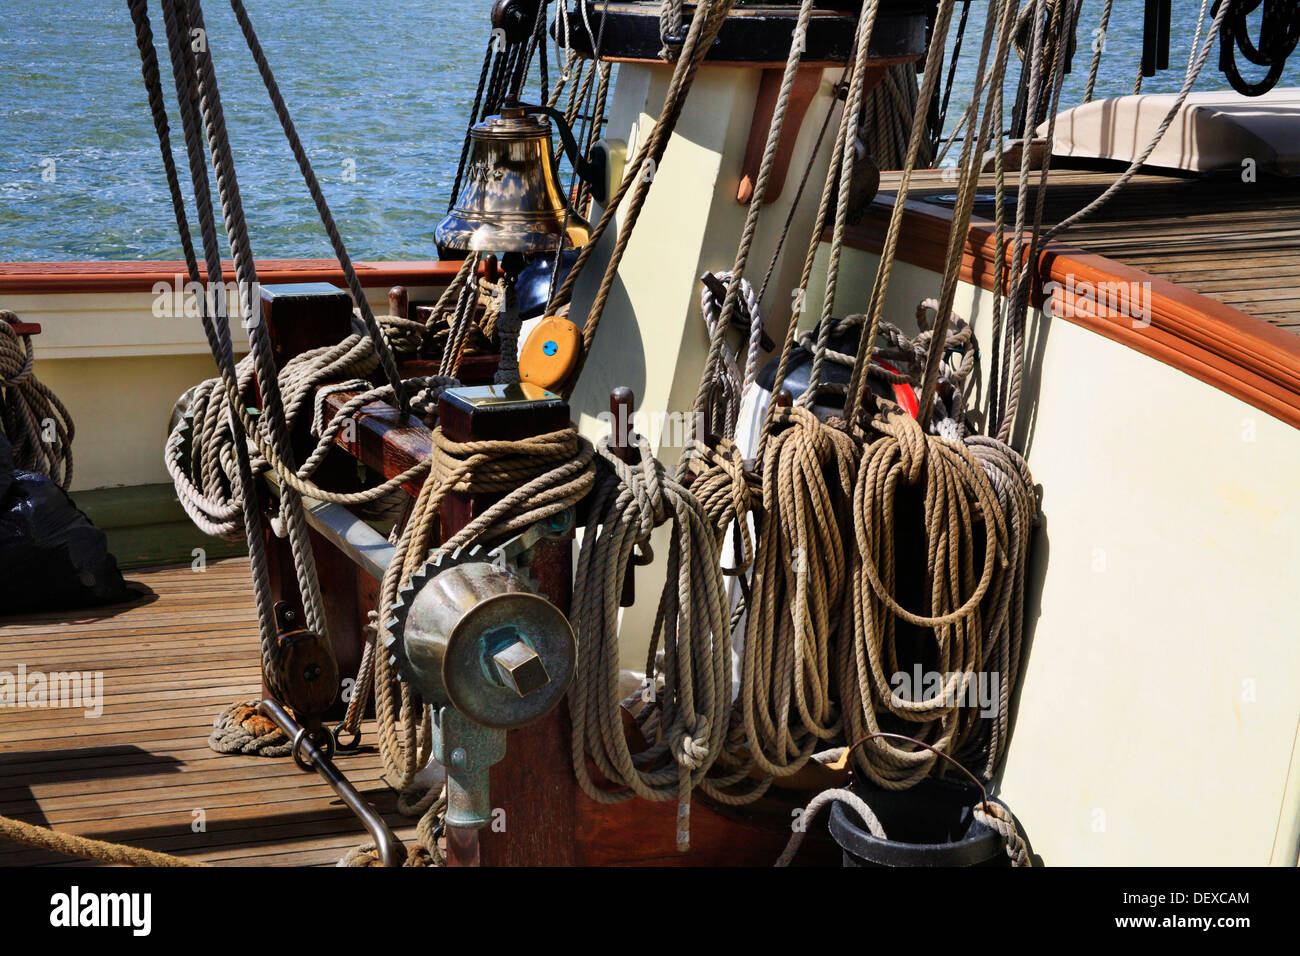 The Ropes, Rigging Pulleys And Bell At The Foot Of The Mainmast On An Antique Replica Sailing Vessel - Stock Image